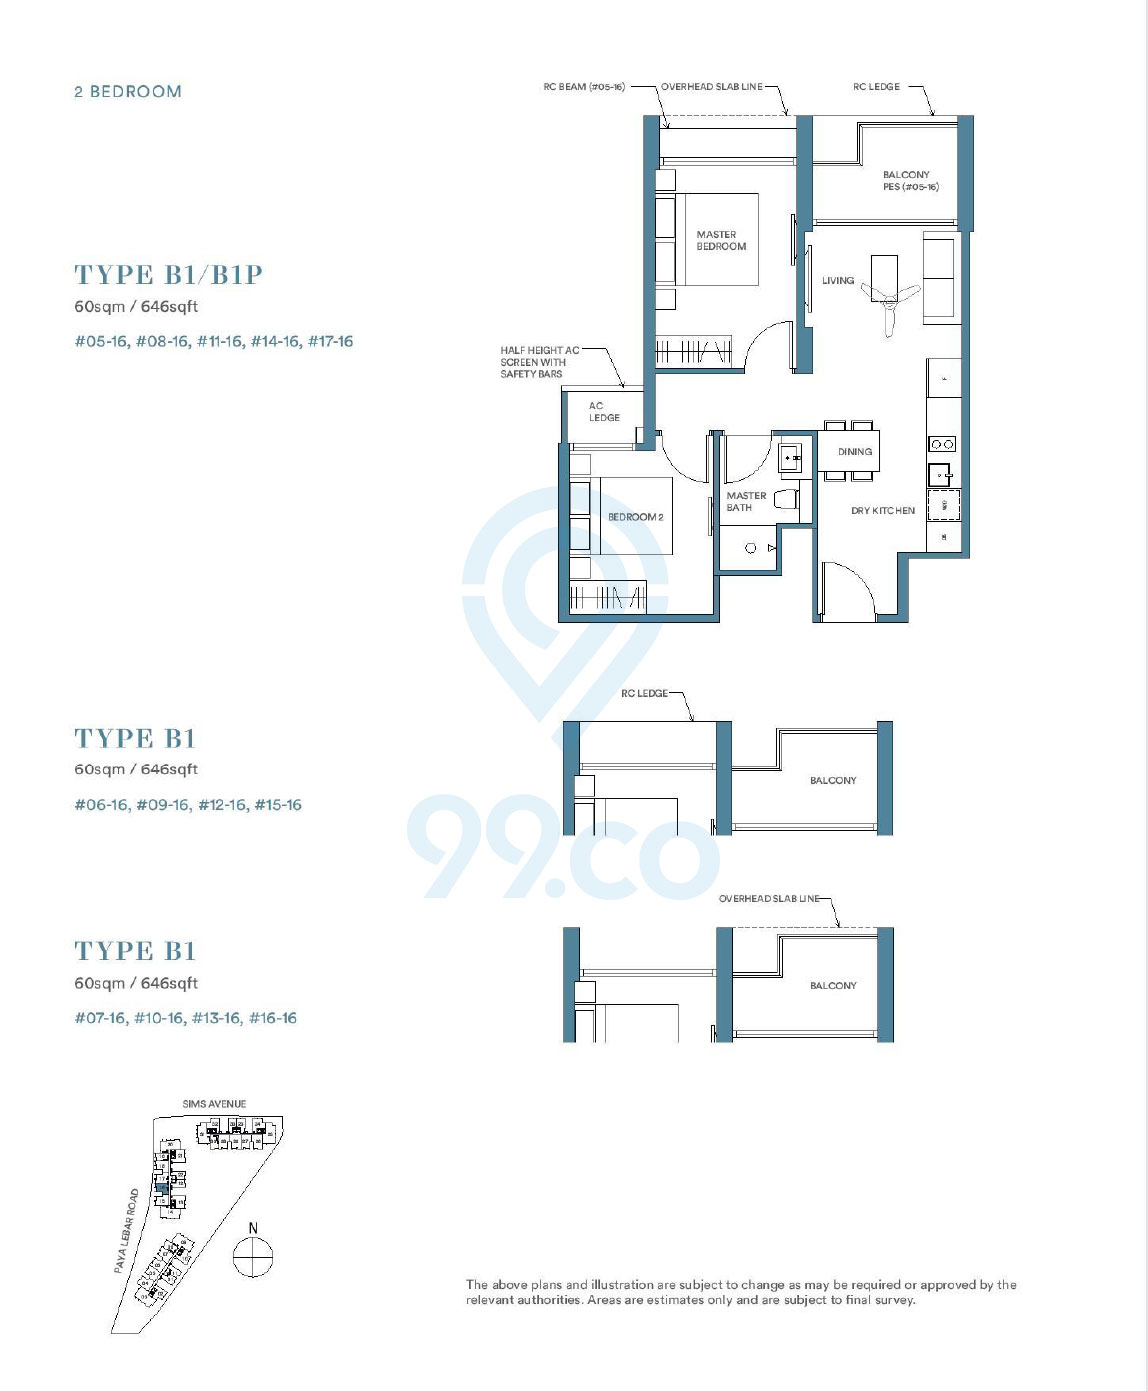 Park Place Residences 2 Bedroom Floor Plan